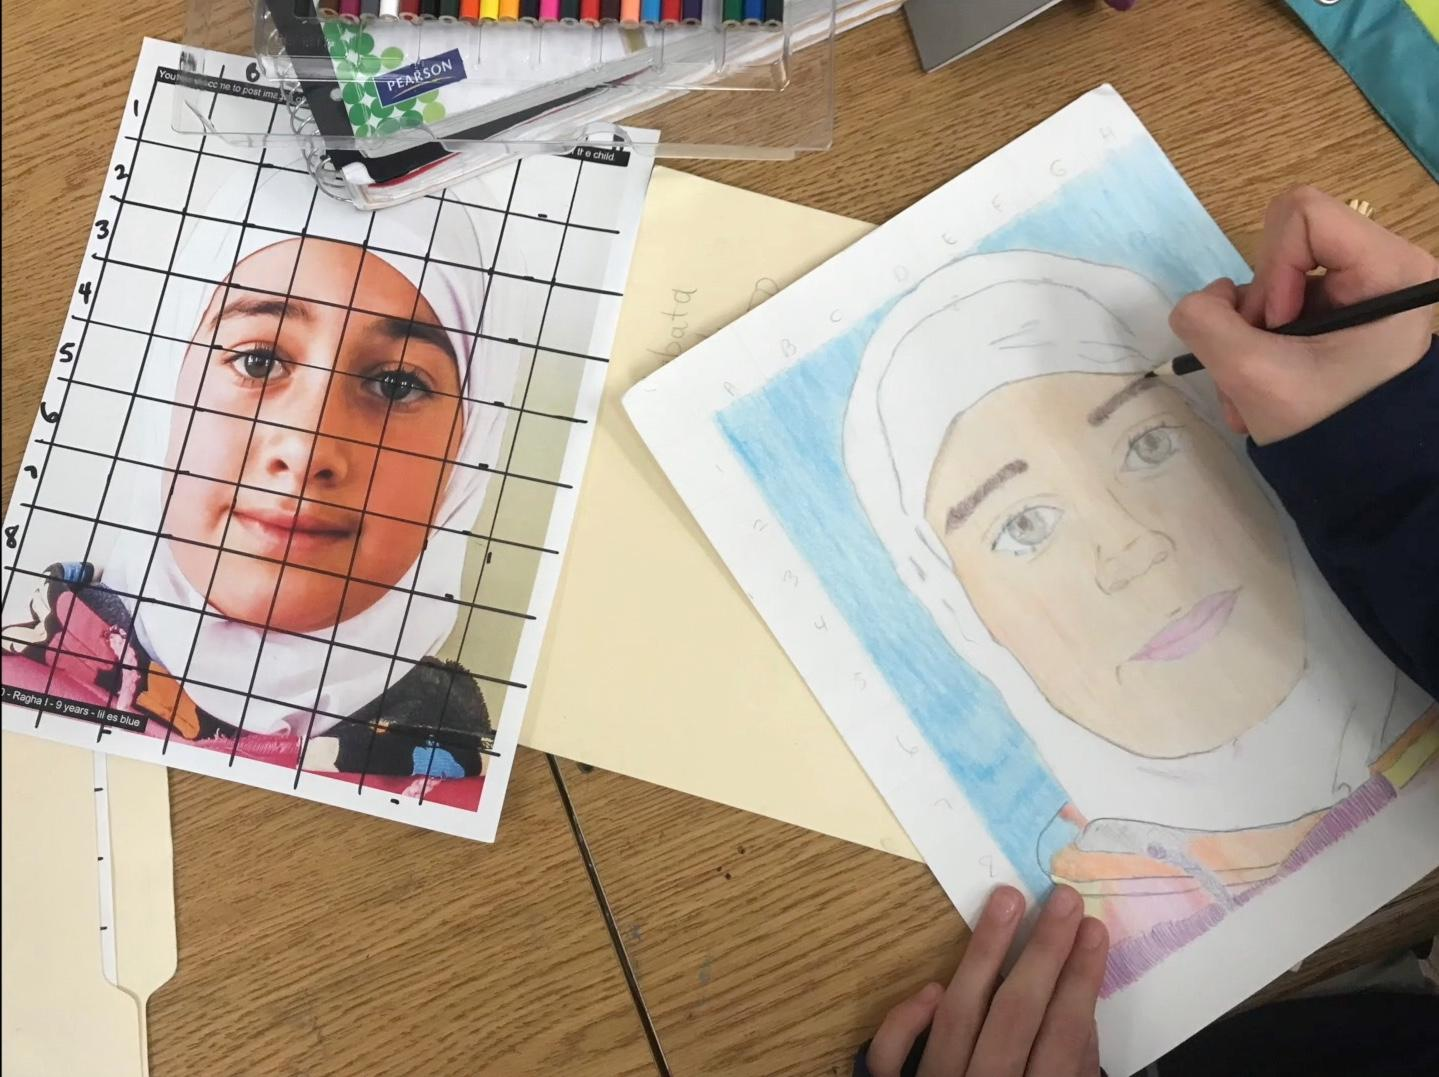 portrait and pictures side by side of a Syrian girl